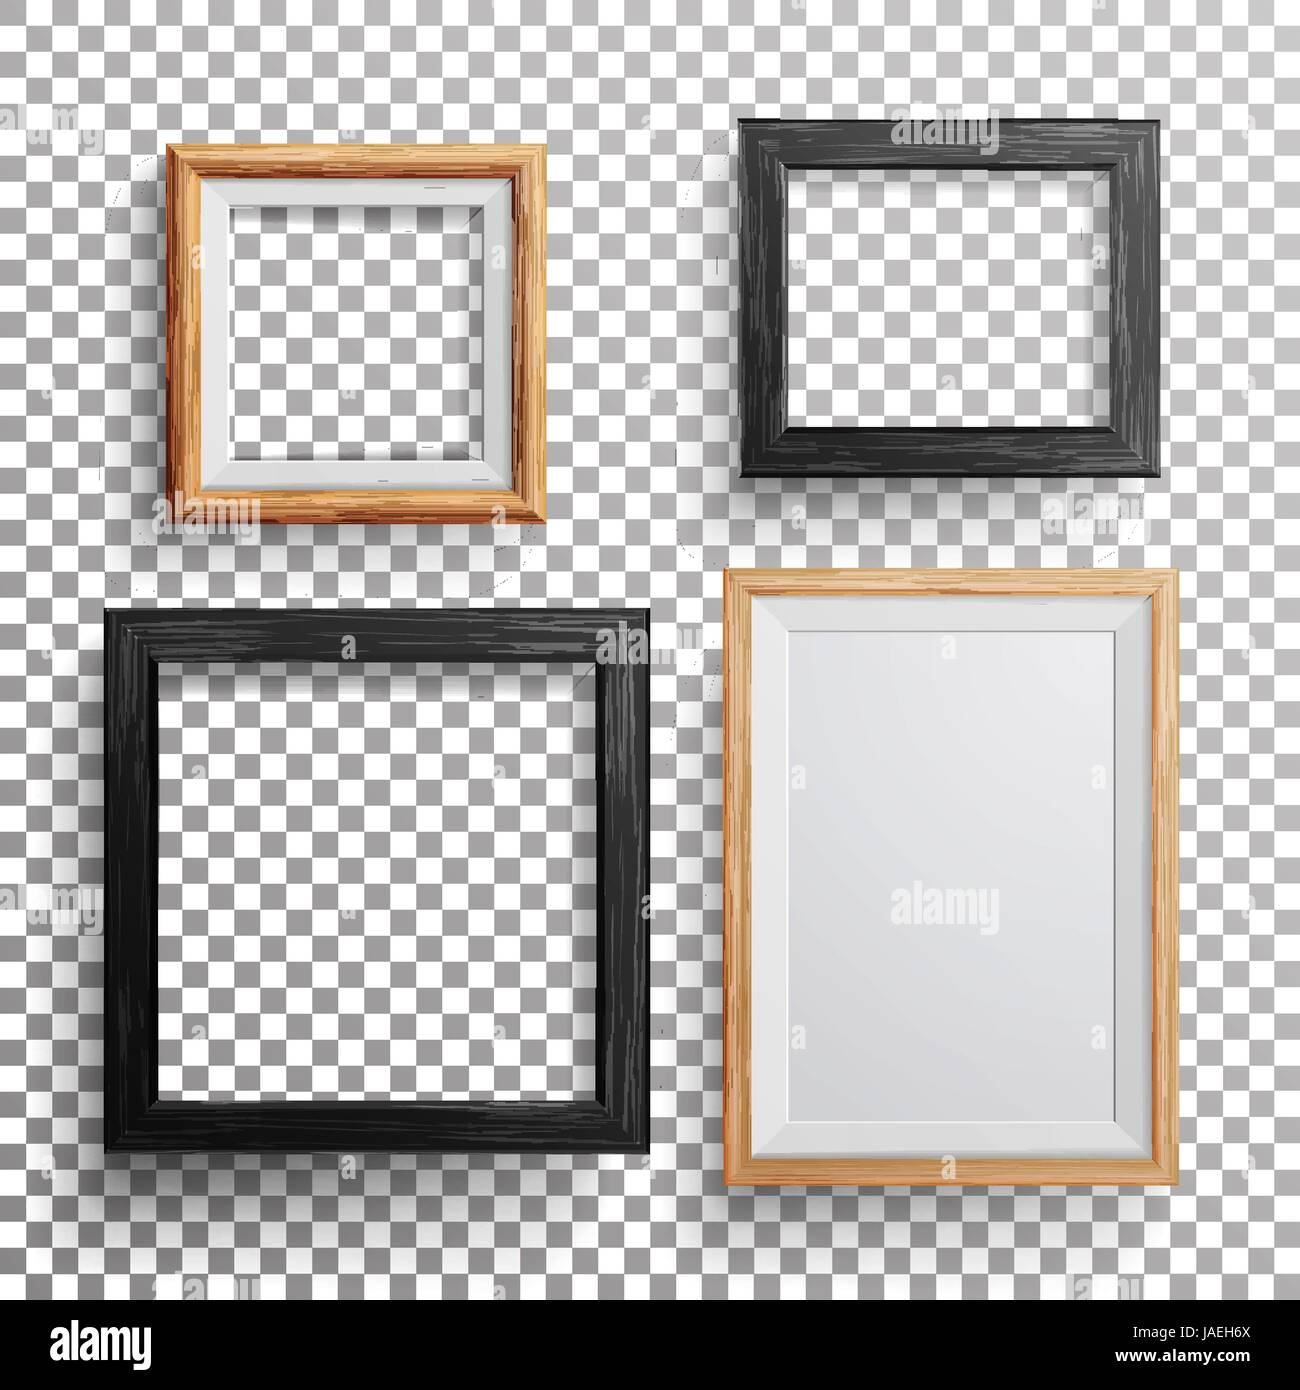 Realistic photo frame vector 3d set square a3 a4 sizes light realistic photo frame vector 3d set square a3 a4 sizes light wood blank picture frame hanging on transparent background with soft transparent shad jeuxipadfo Gallery